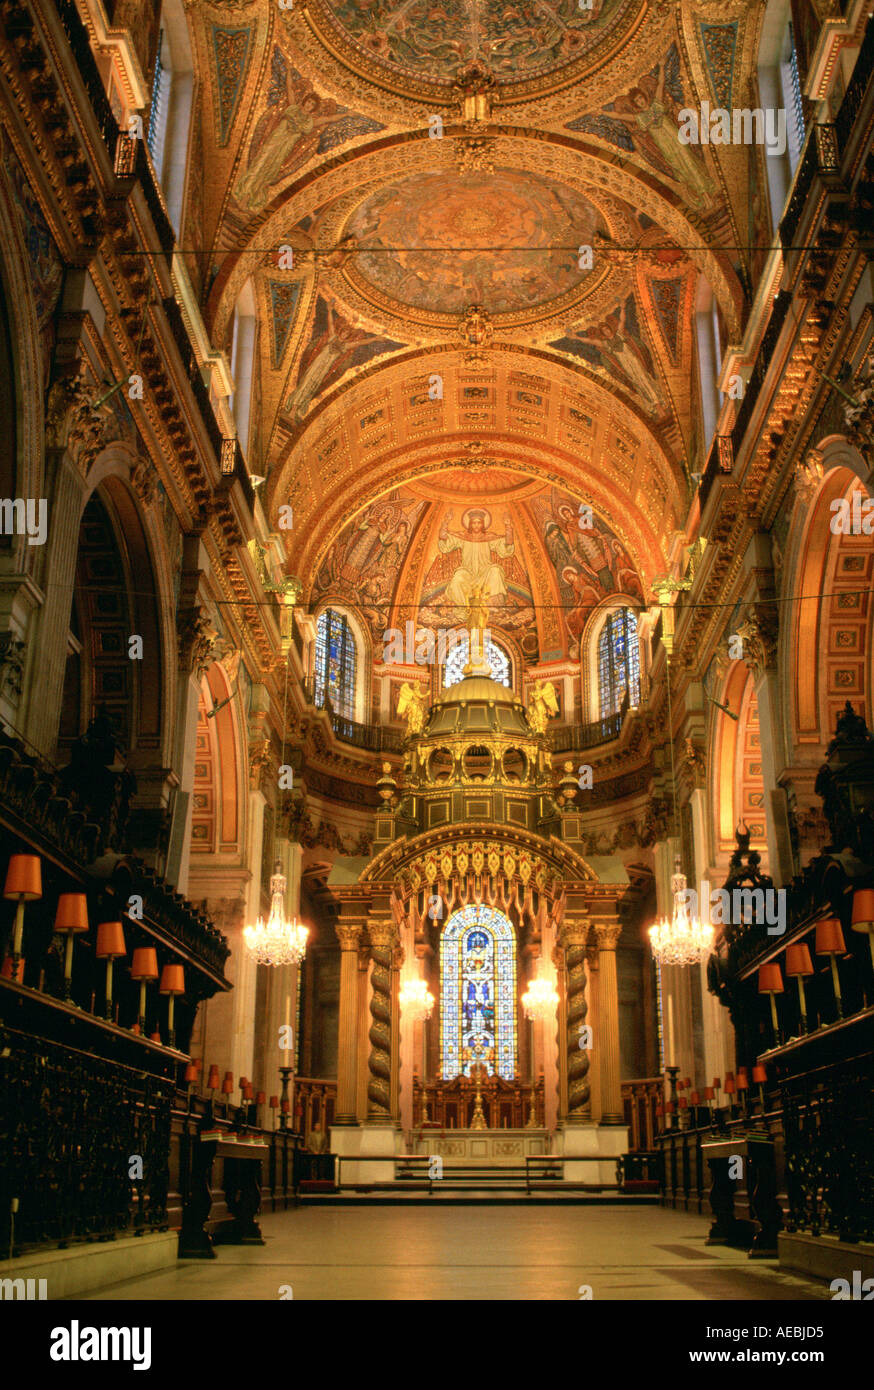 Interior of St Paul s Cathedral which was designed by architect Sir Christopher Wren London England - Stock Image